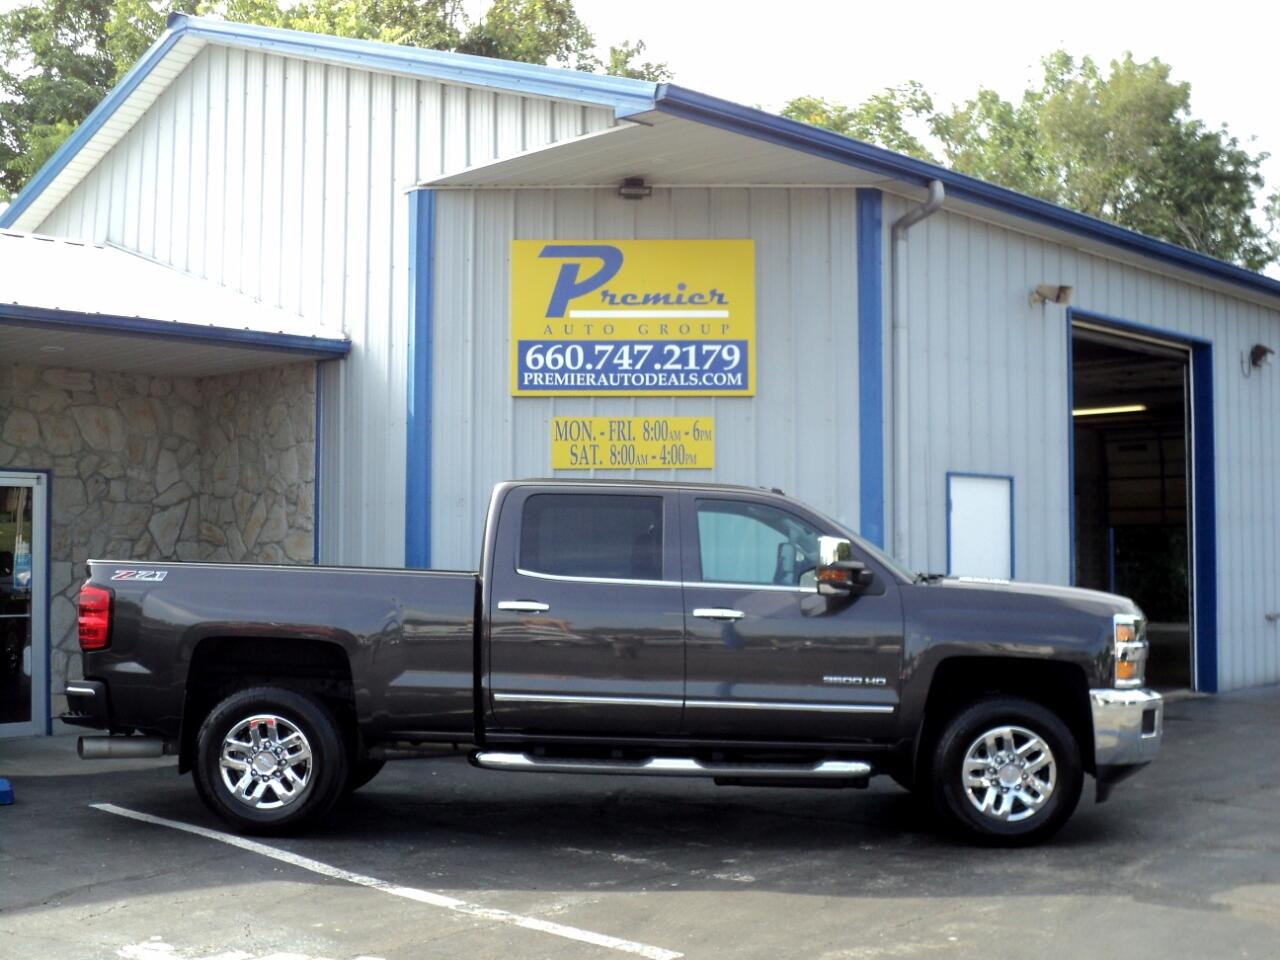 "2015 Chevrolet Silverado 3500HD Built After Aug 14 4WD Crew Cab 153.7"" LTZ"